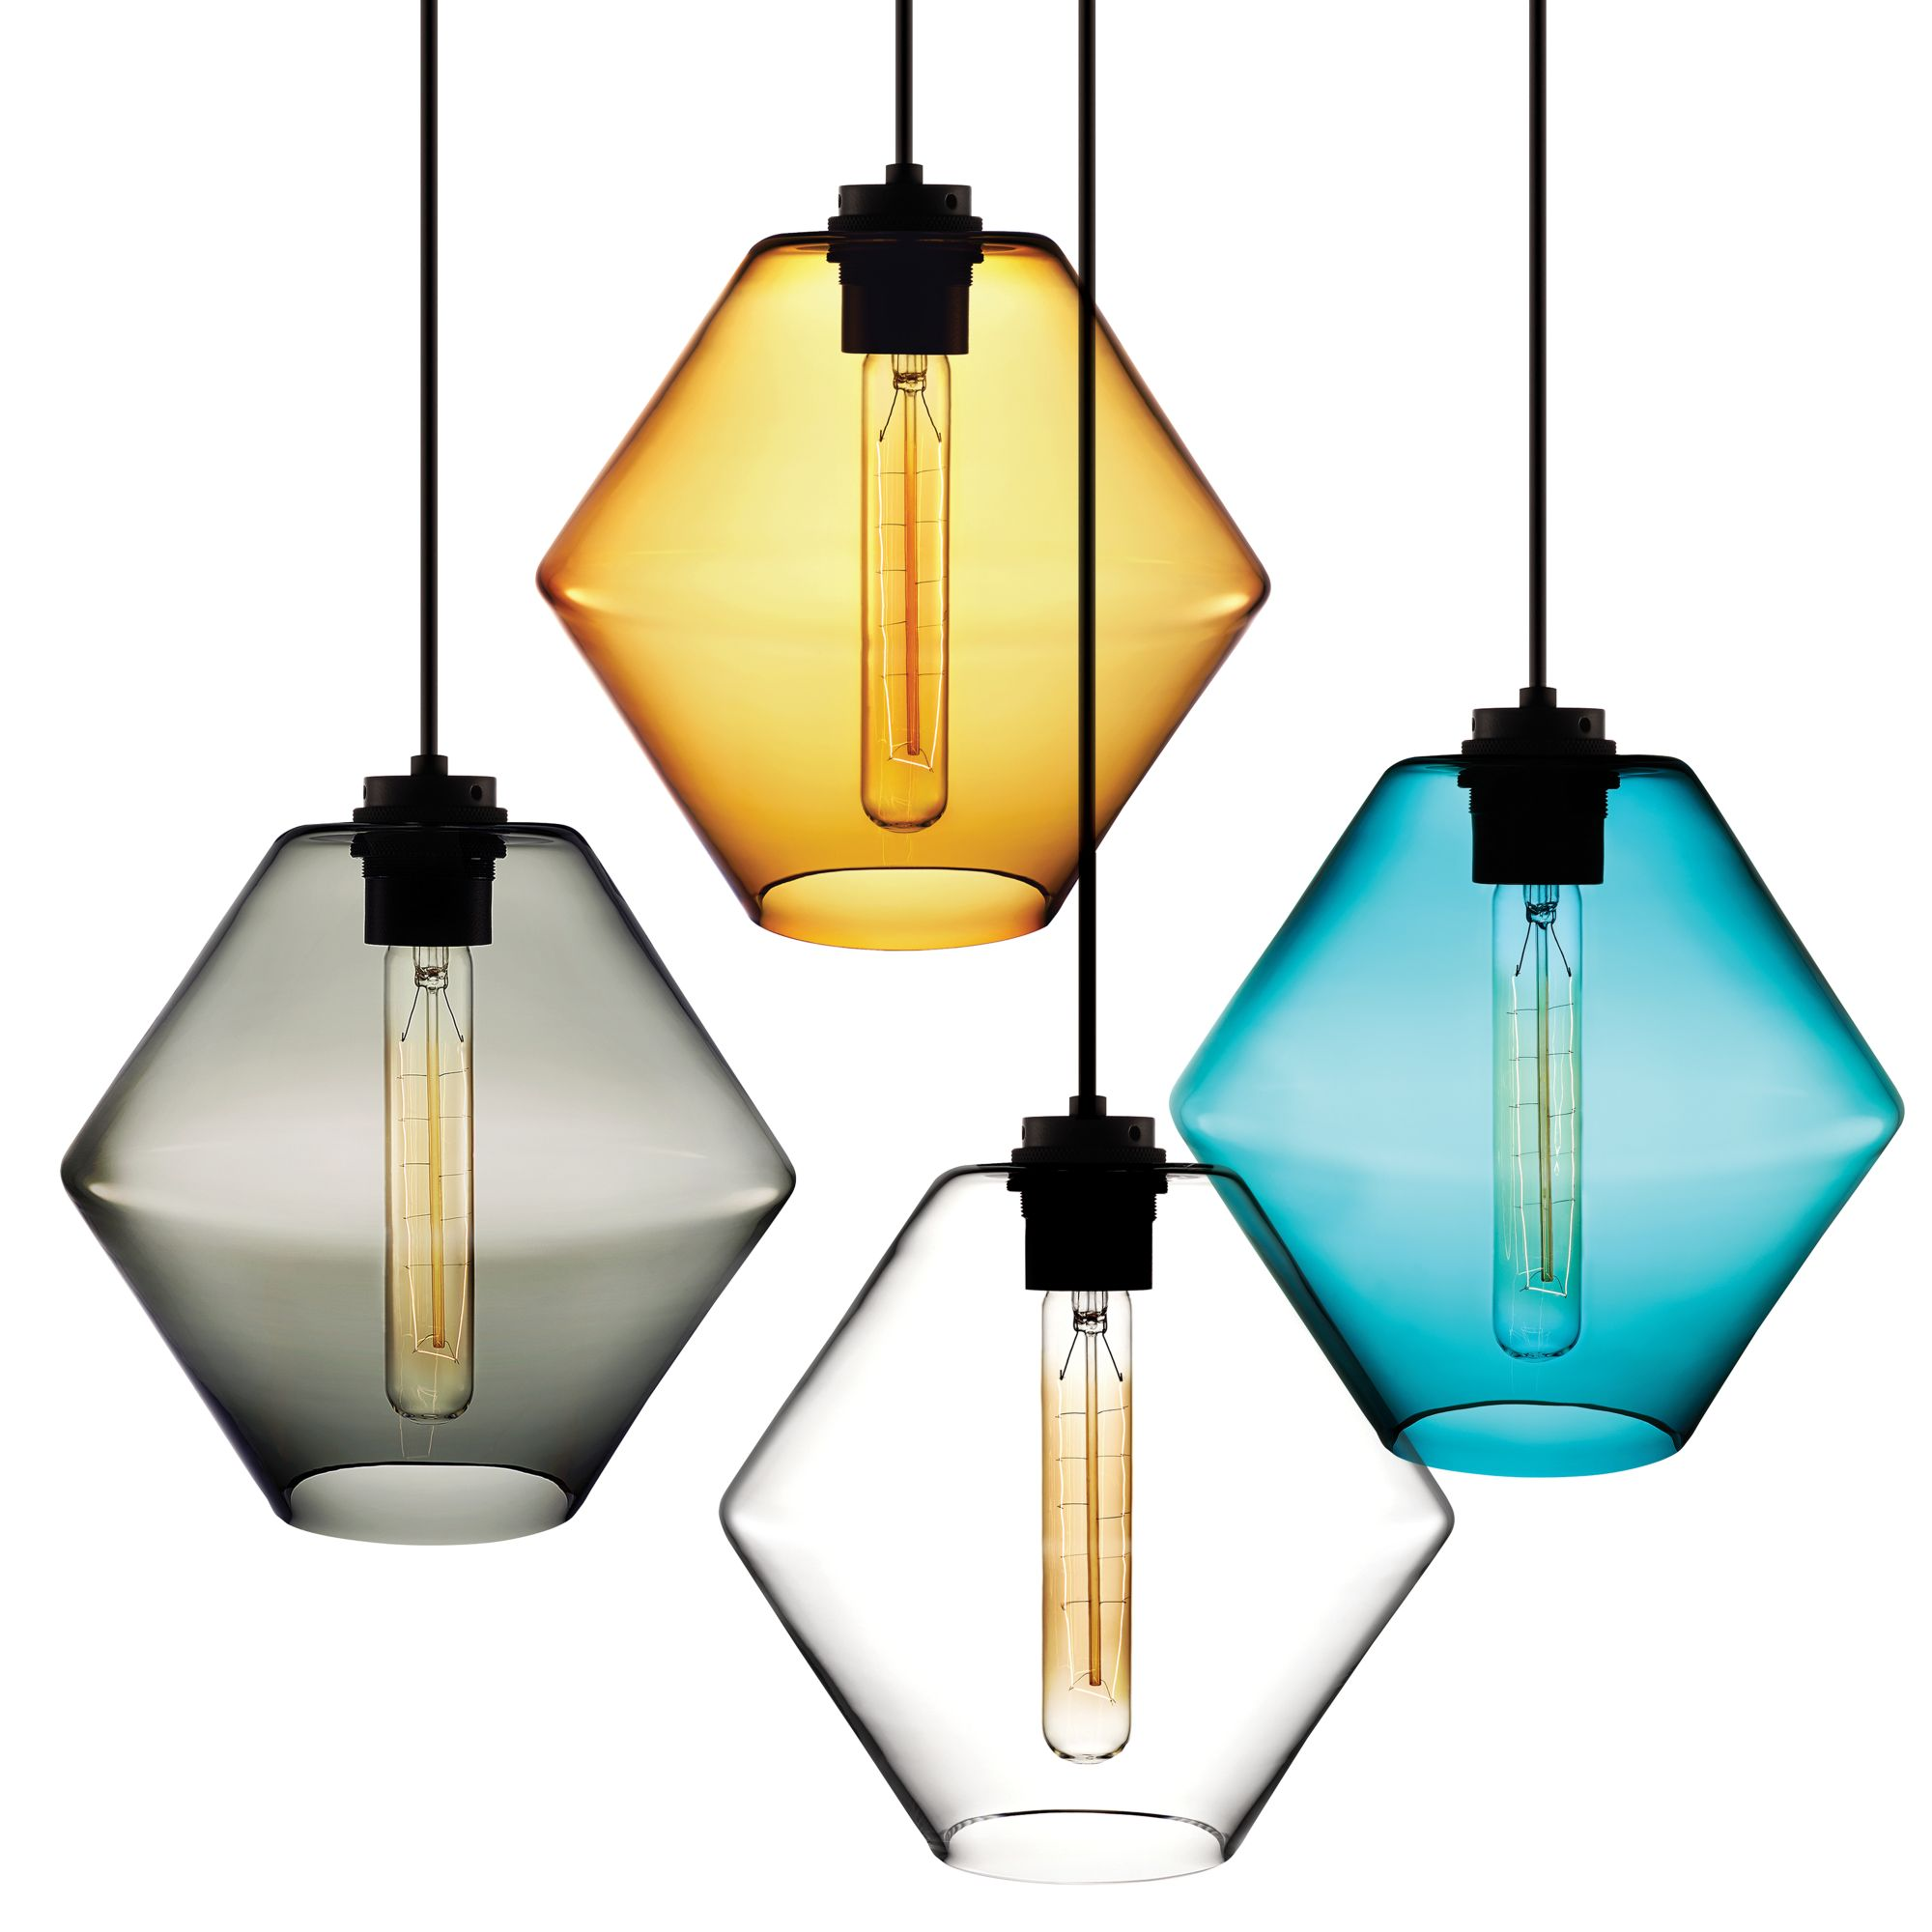 Sculptural pendant light available in several colors